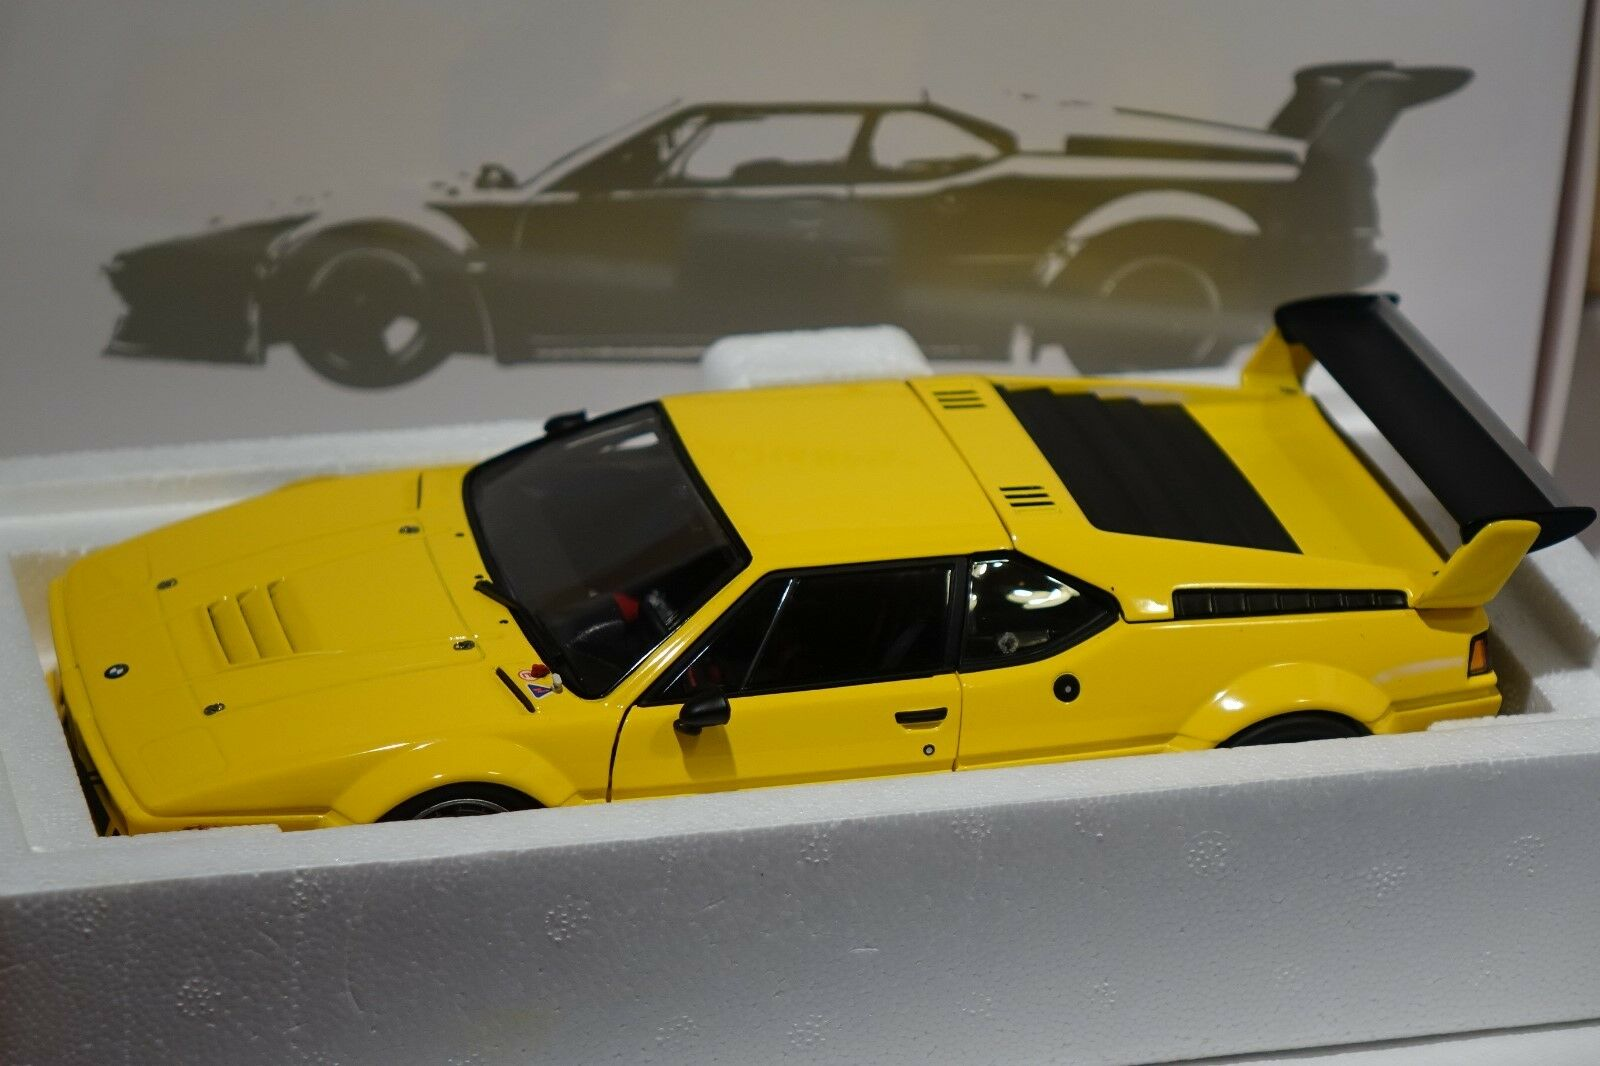 BMW m1  Provoiture Plain Body Version jaune 1979 1 18 Minichamps nouveau + OVP 180792998  vente directe d'usine